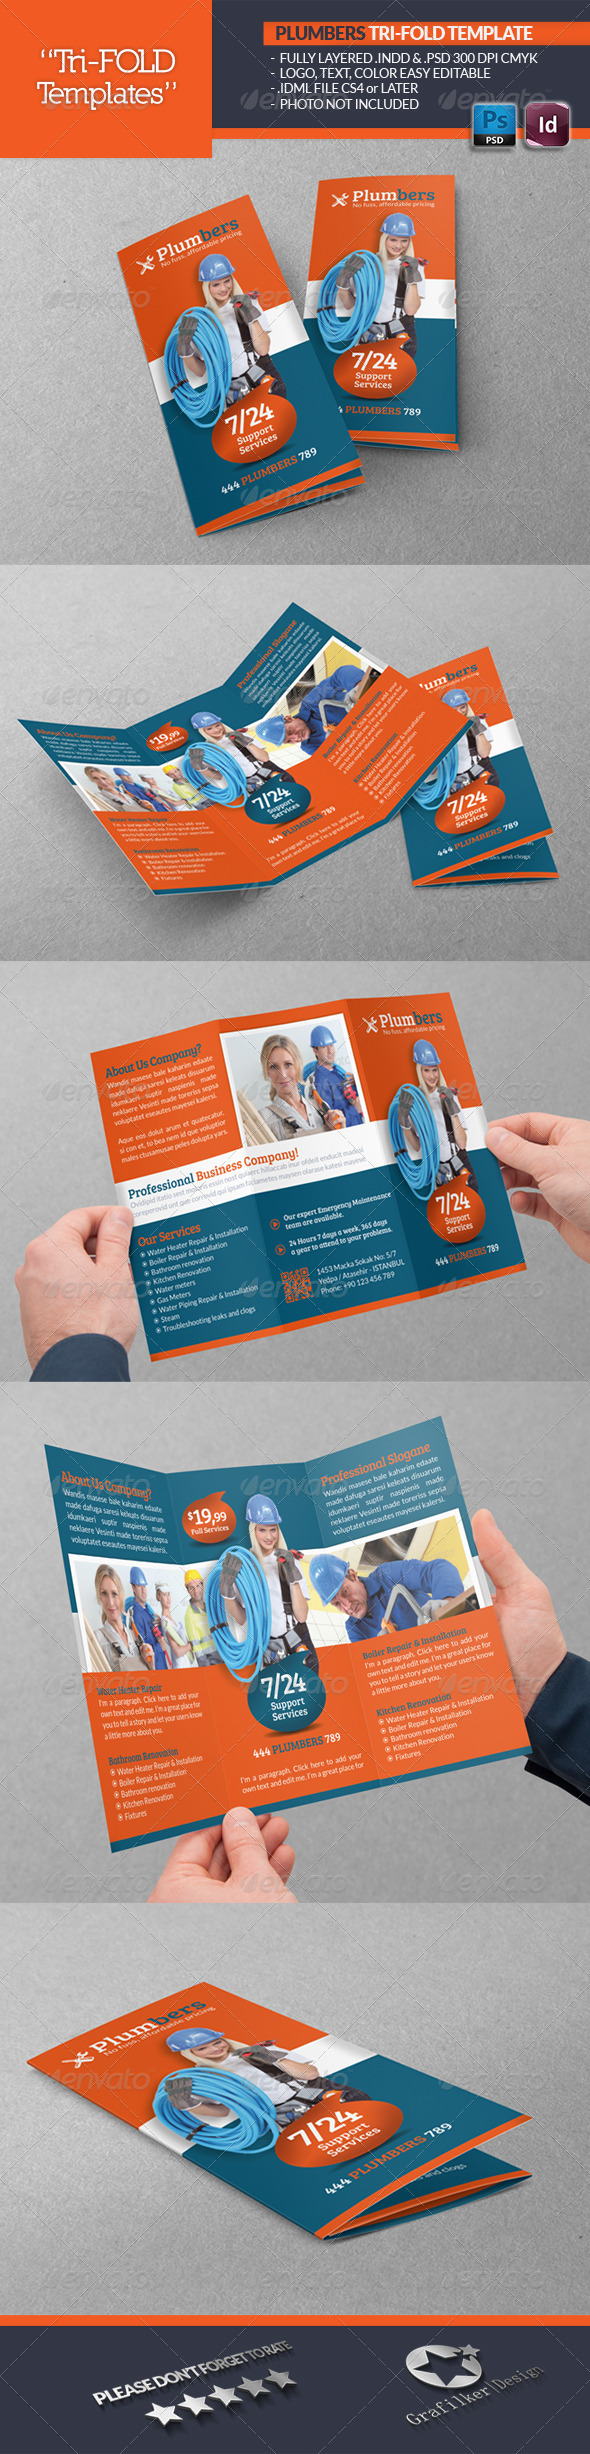 GraphicRiver Plumbers Tri-Fold Template 5167291